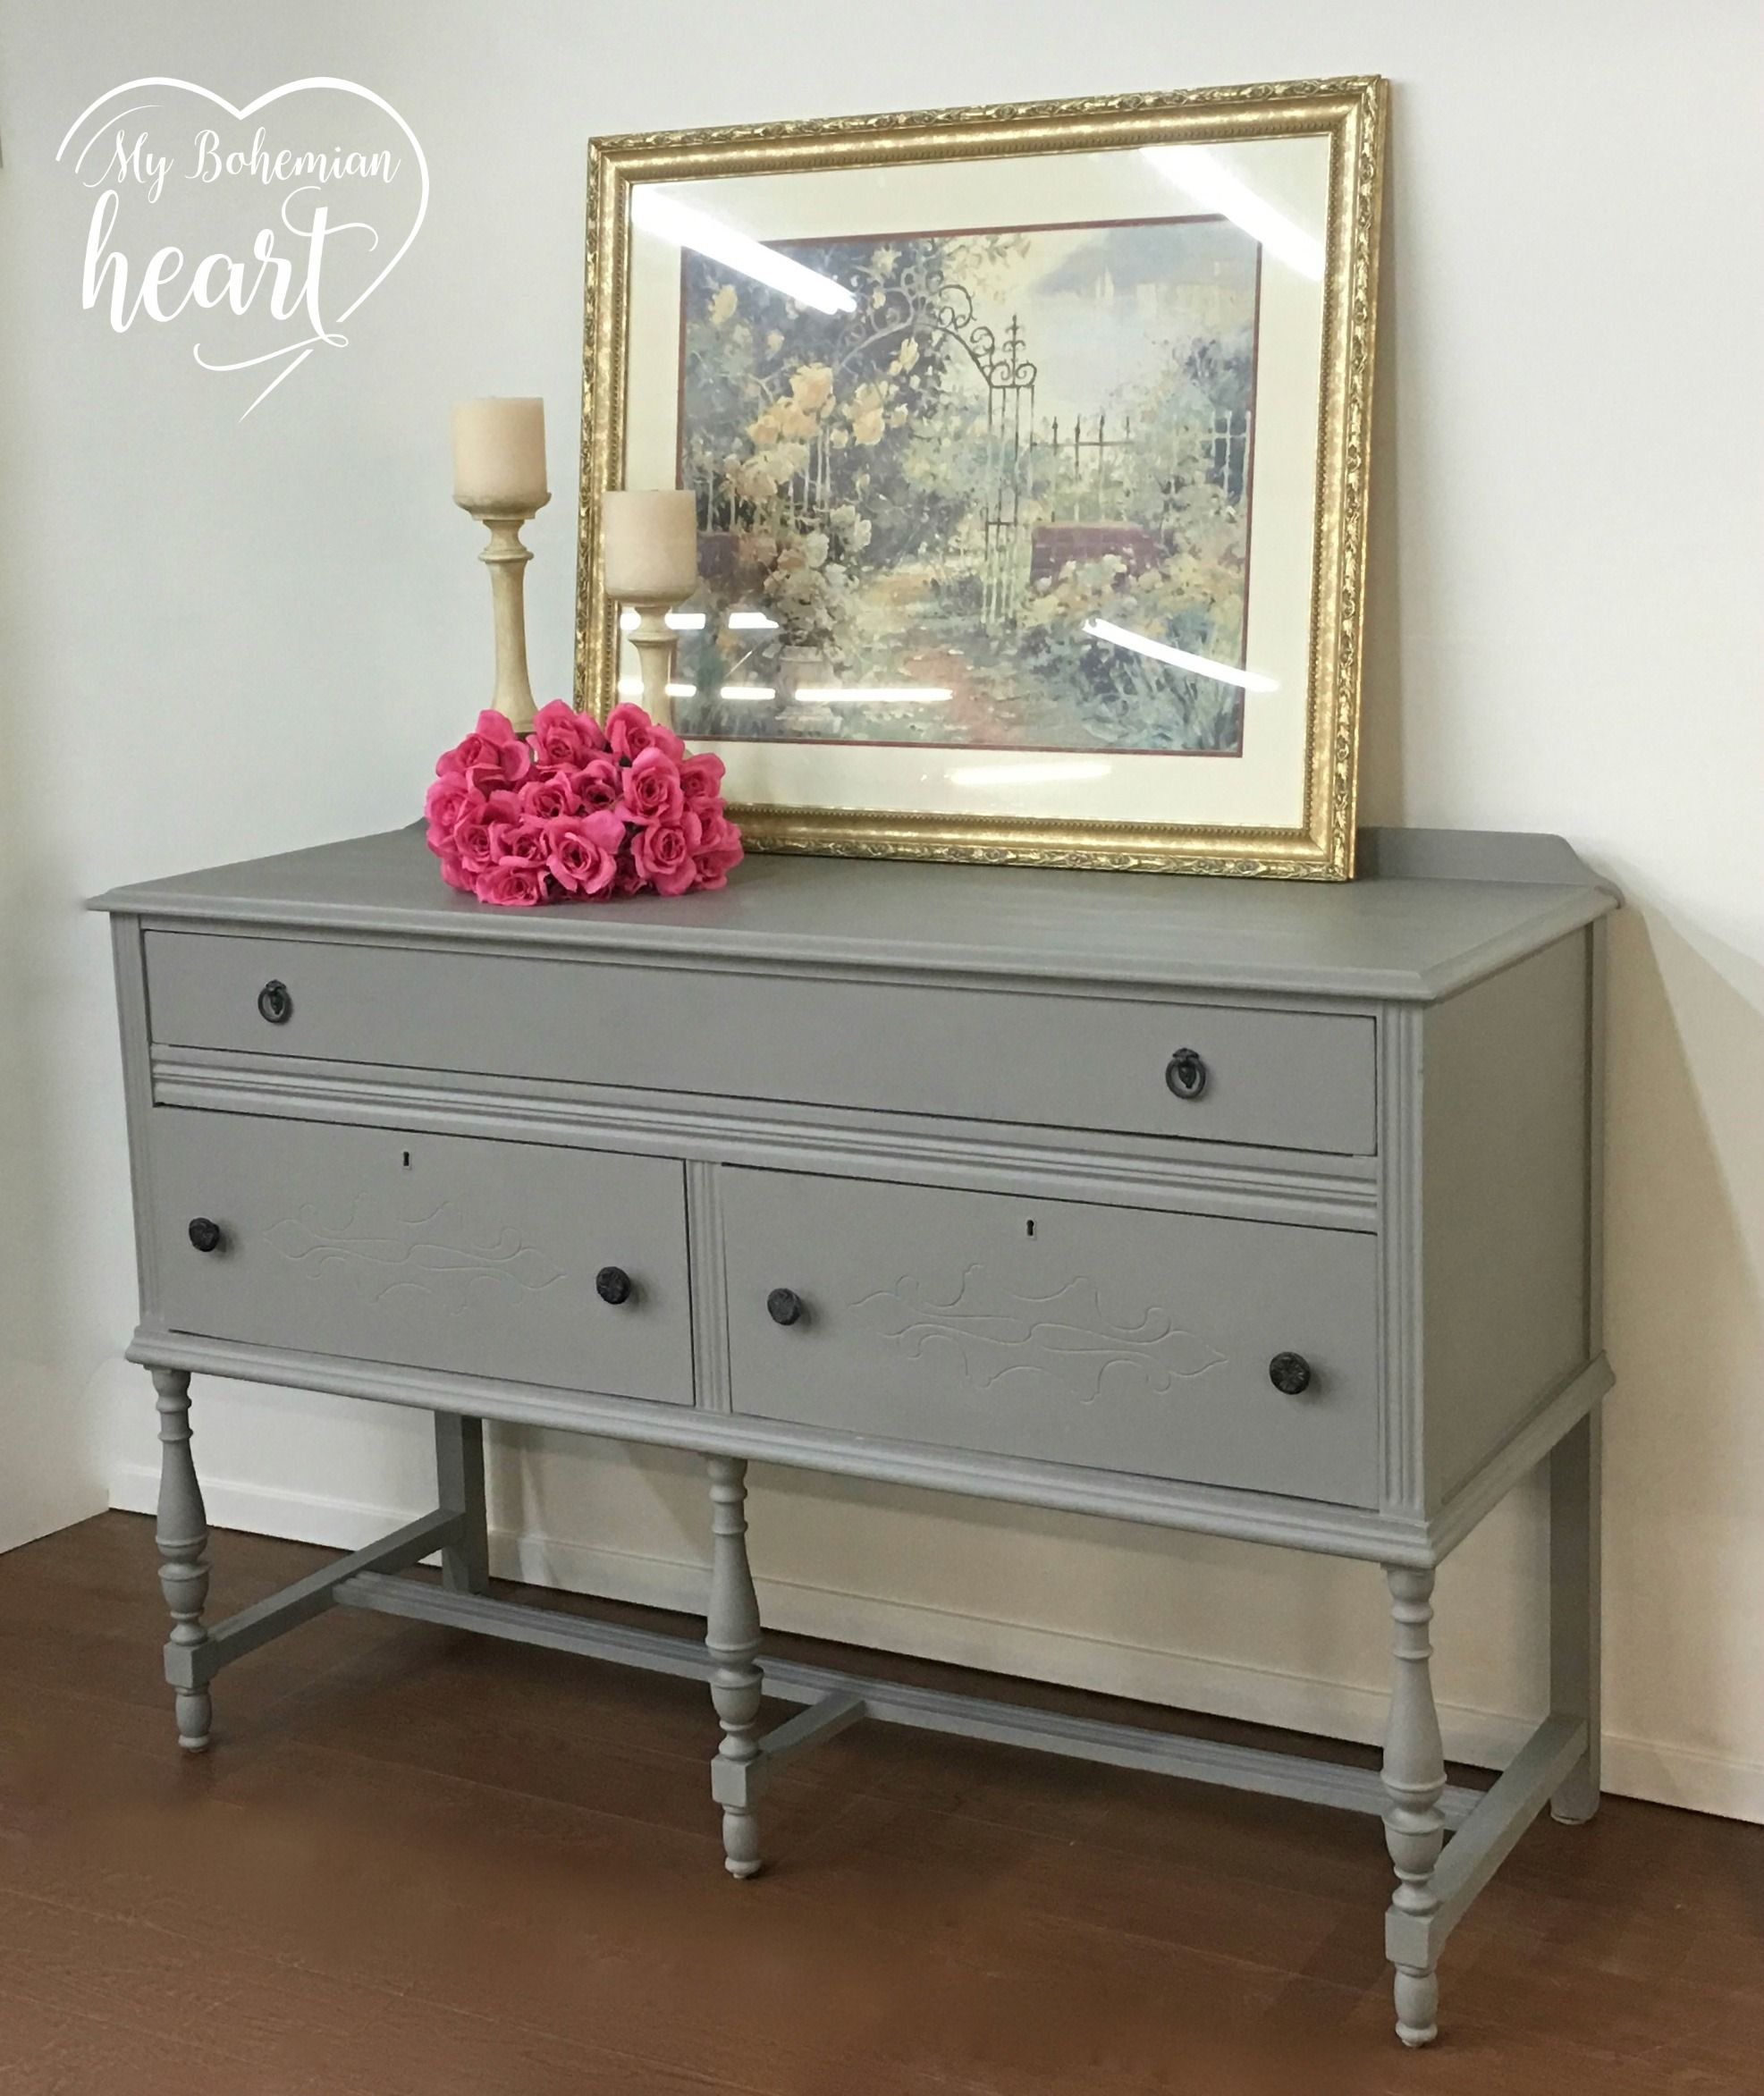 French Linen Annie Sloan Chalk Paint Clear Wax Gray Painted Furniture Shabby Chic Dresser Painted Furniture [ 2344 x 1973 Pixel ]